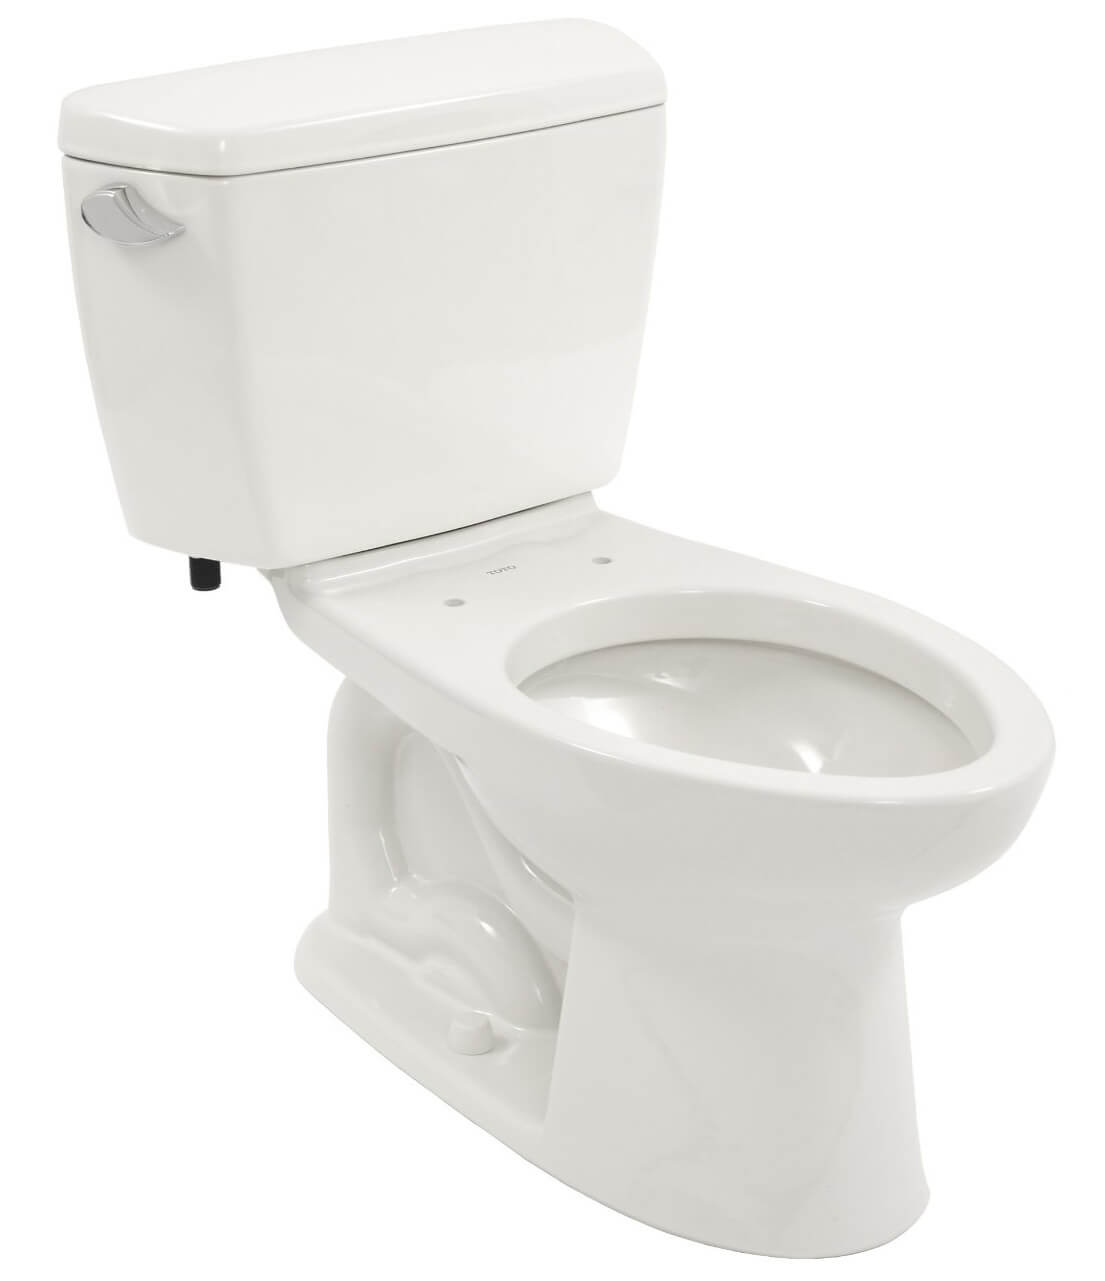 Best toilet on the market reviews - Best Flushing Toilet For The Money In 2017